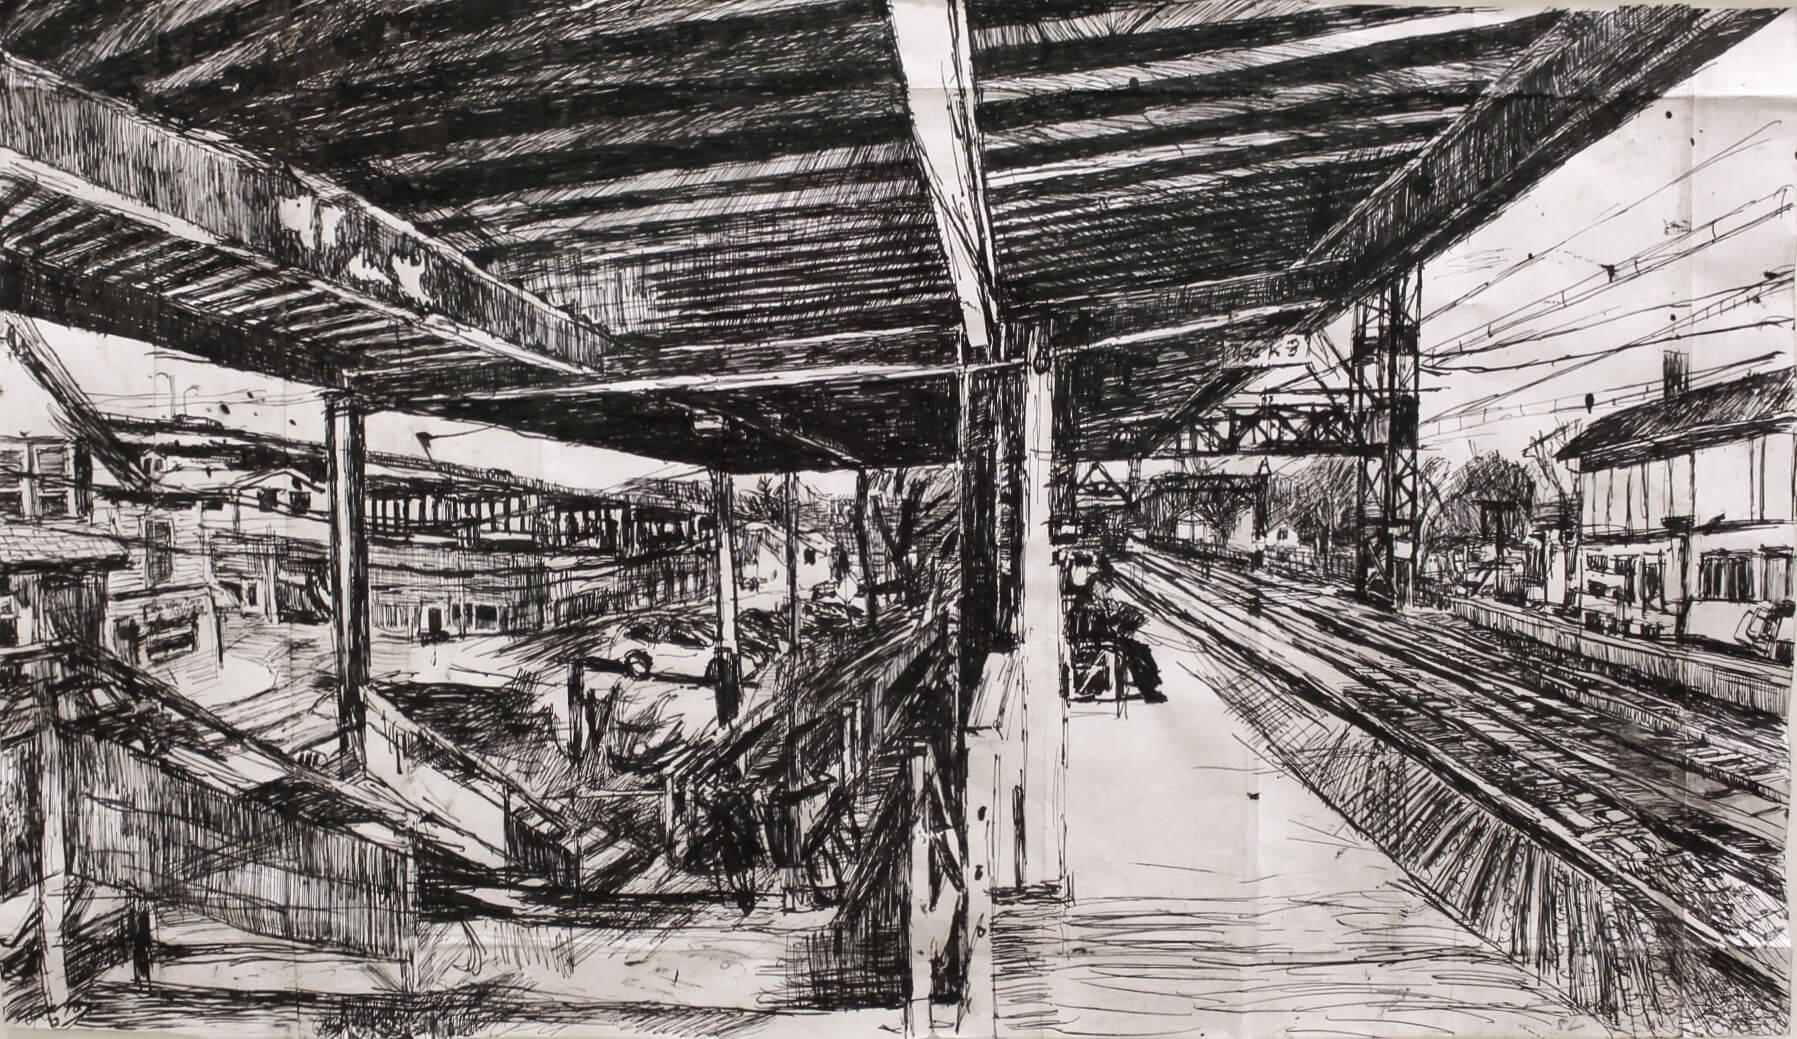 Stanley Lewis, Westport Station with Figures, 2009, ink on paper, 13 x 23 inches (From the Louis-Dreyfus Family Collection, courtesy of The William Louis-Dreyfus Foundation Inc.)